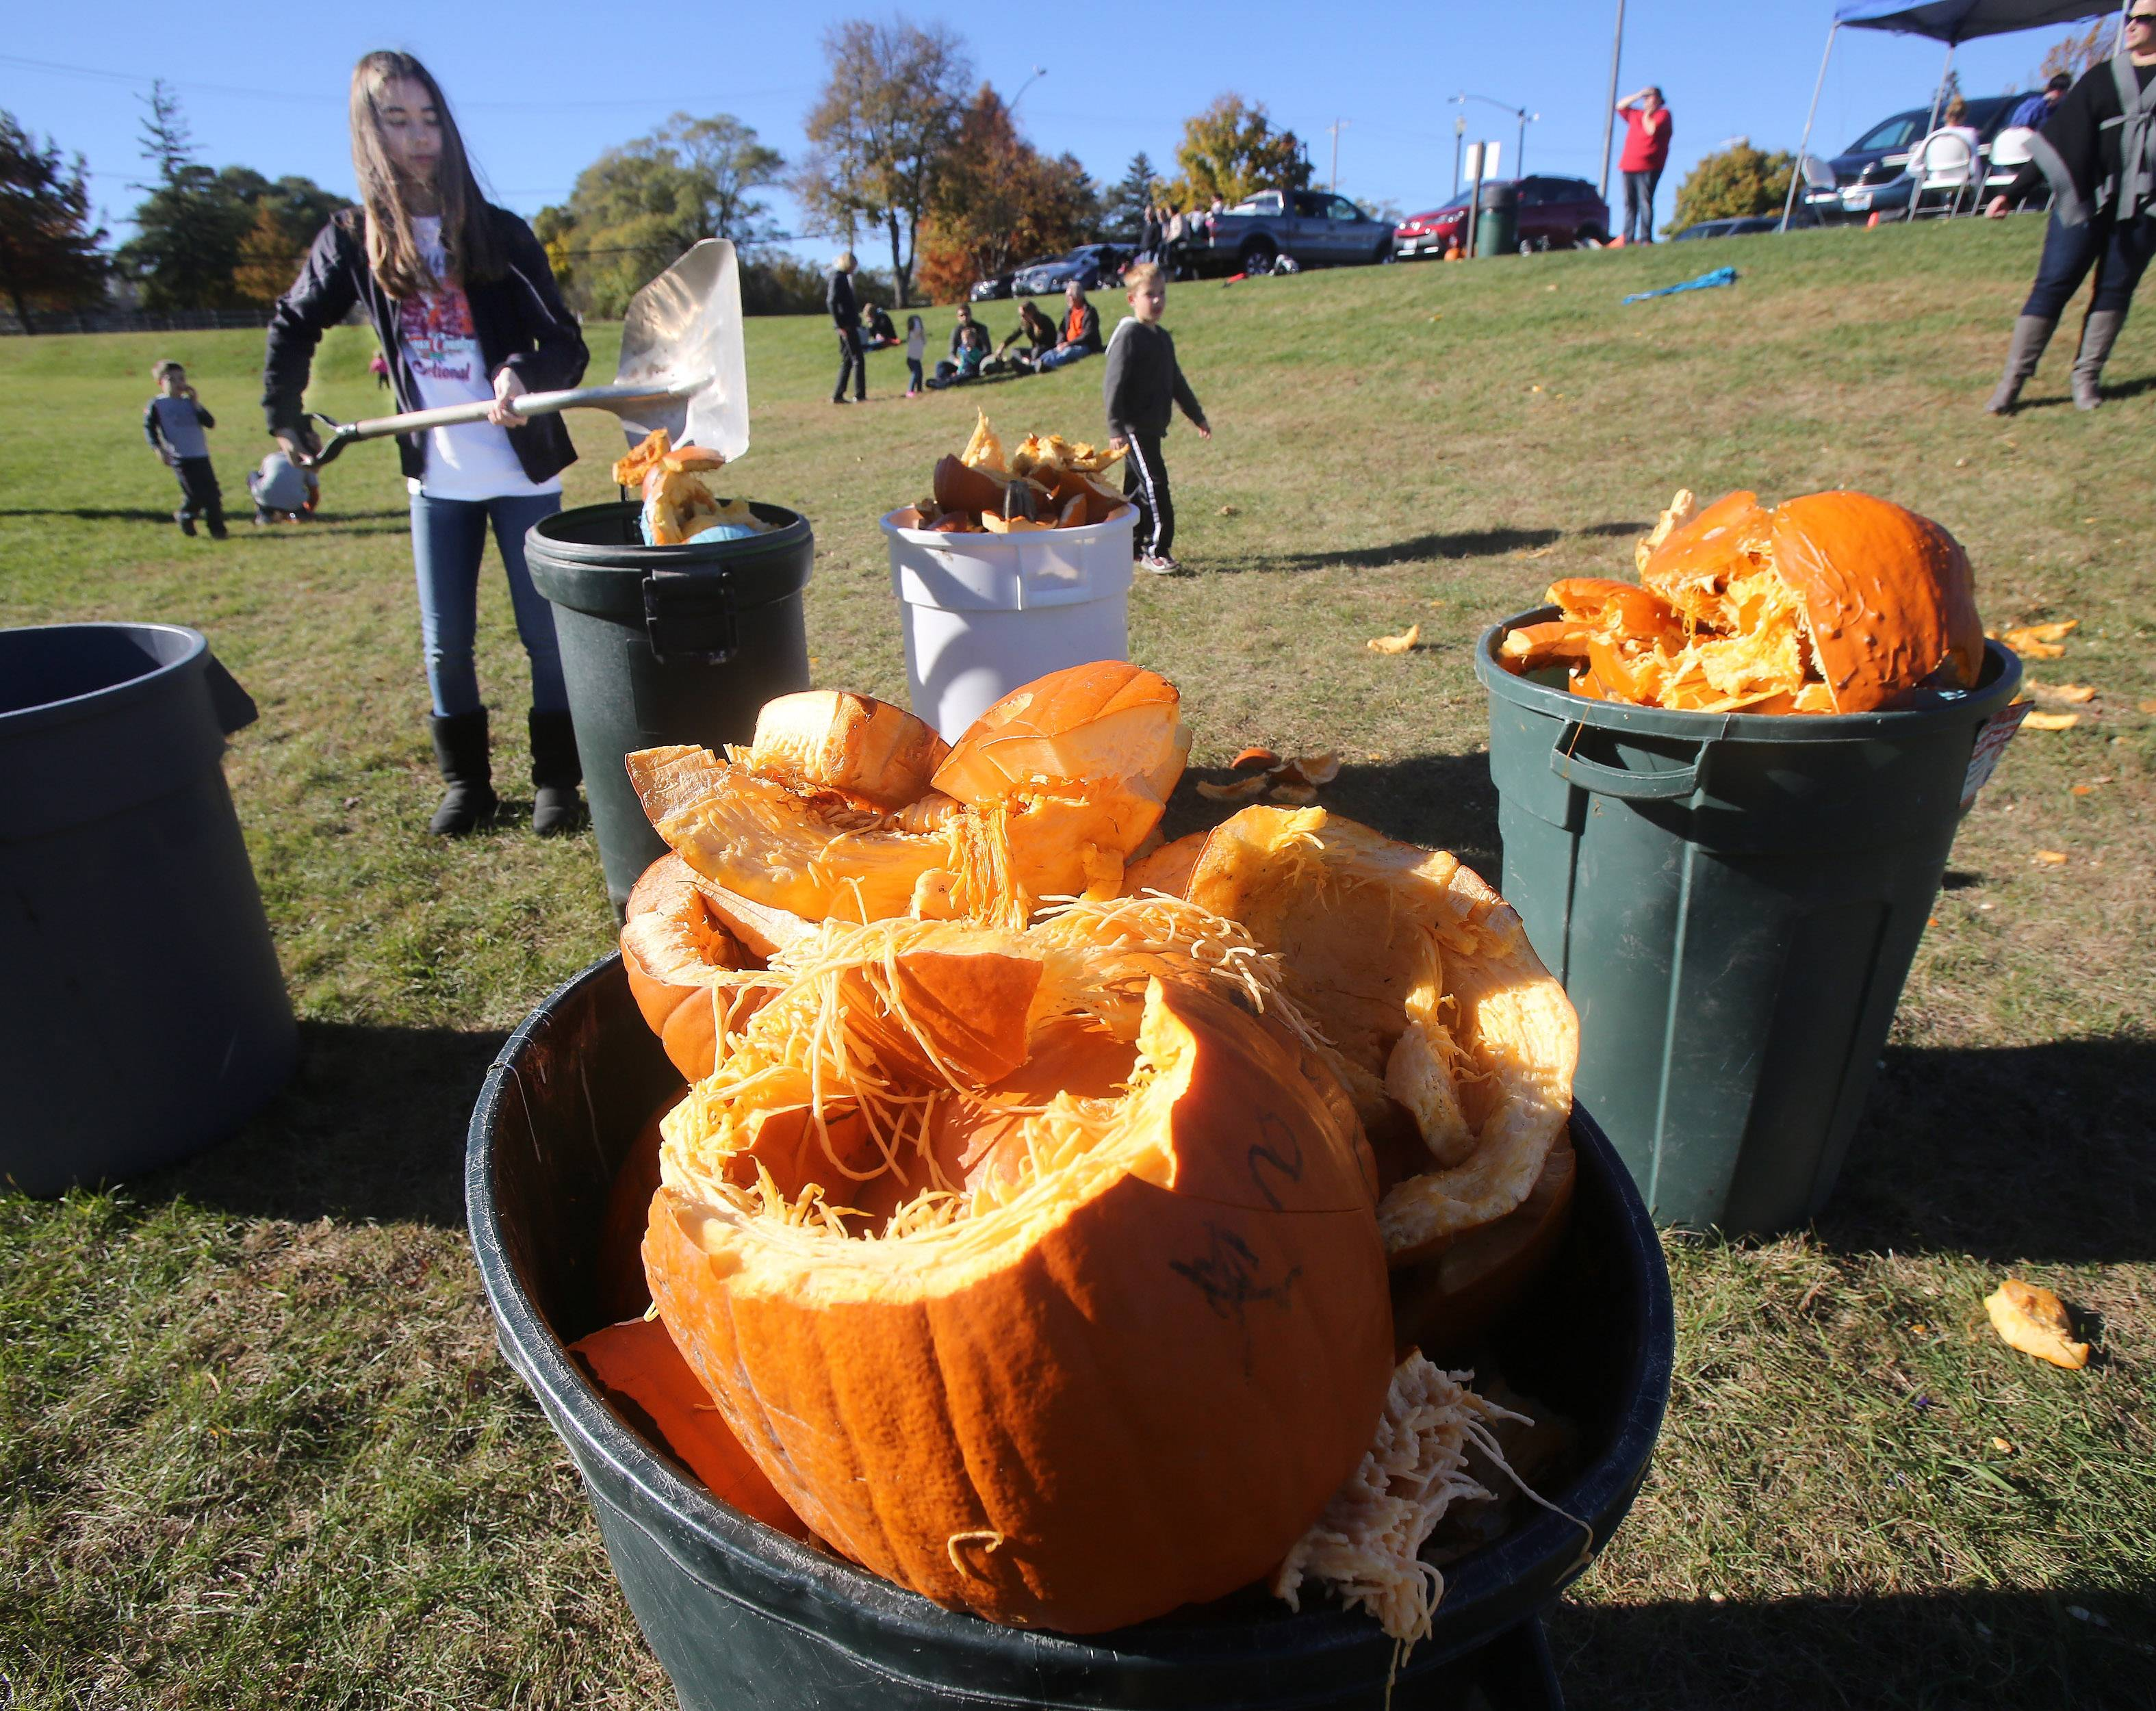 Lake Zurich High School sophomore Eilsa Krause fills a trash container with pumpkins after the 8th annual Pumpkin Drop this past Sunday at Keith Mione Community Park in Mundelein. The leftover pumpkin scraps from the event were collected and sent to the Prairie Crossing farm in Grayslake for composting.